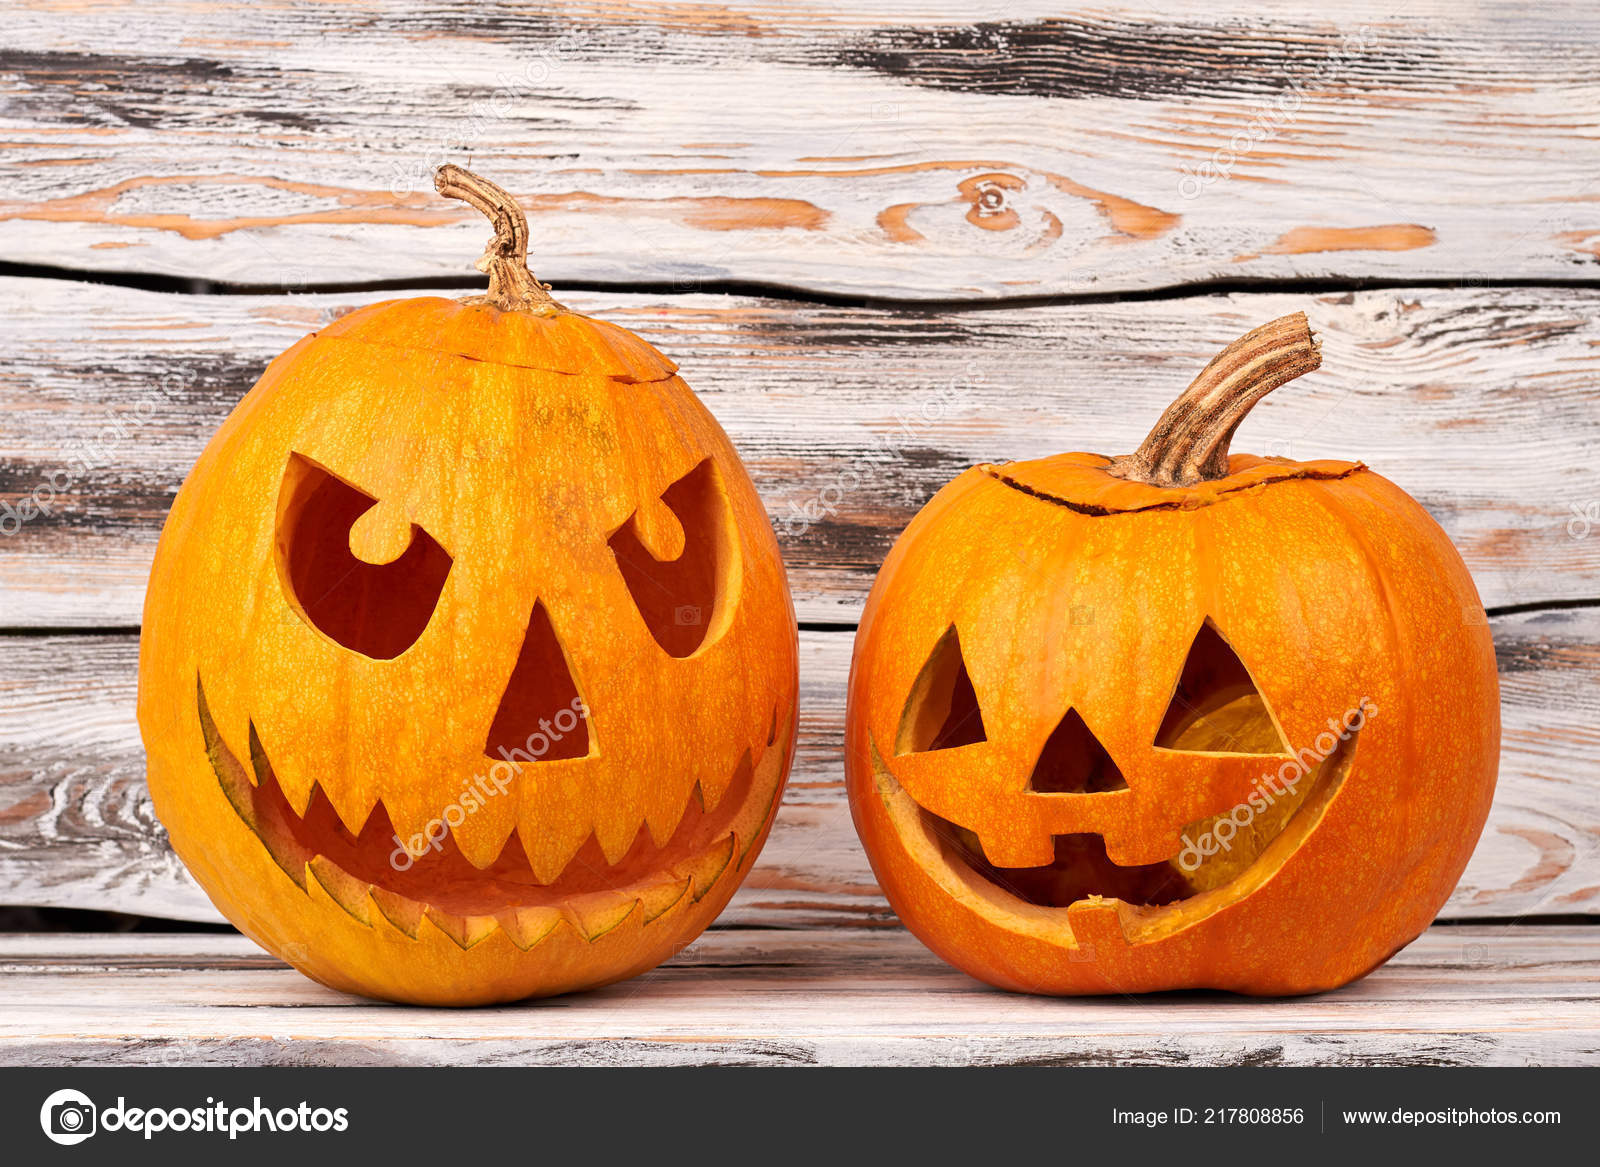 Easy Pumpkin Faces Scary Halloween Scary Pumpkins On Wooden Background Stock Photo C Denisfilm 217808856